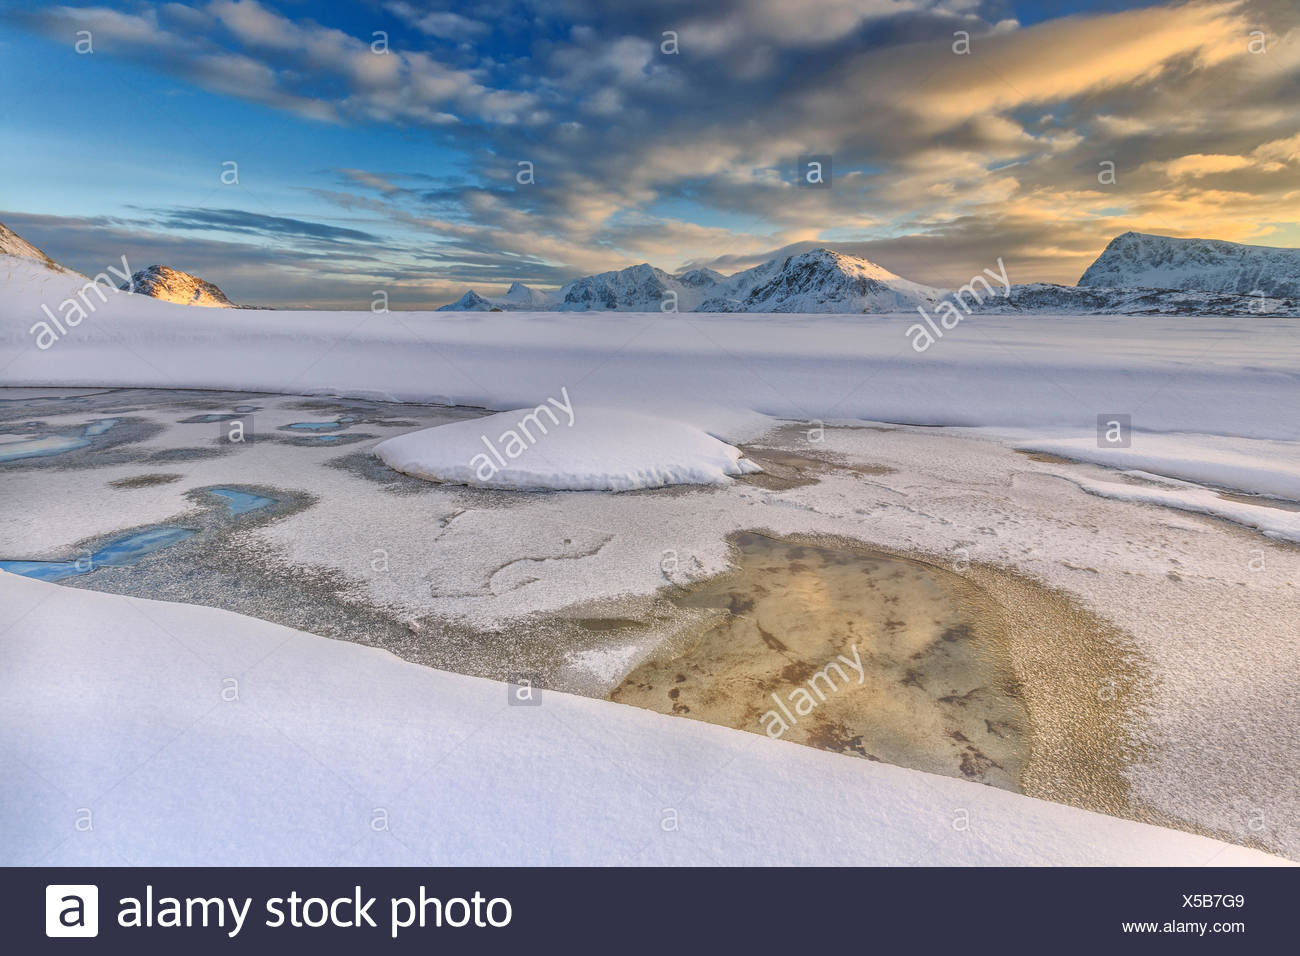 The golden sunrise reflected in a pool of the clear sea where the snow is almost melted. Haukland Lofoten Islands Norway Europe Stock Photo